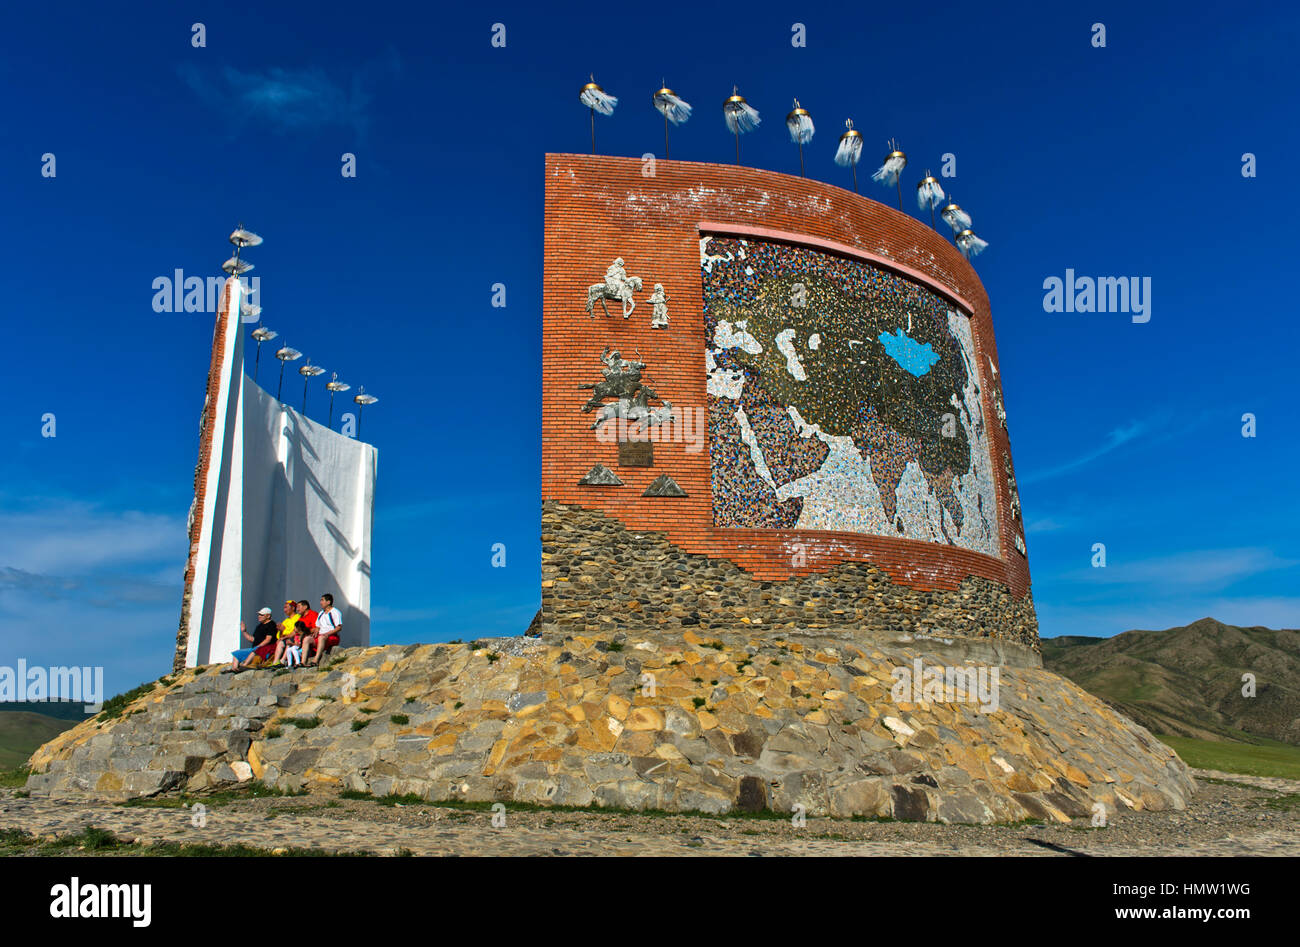 Tourists at the Great Imperial Map Monument, Kharkhorin, Mongolia - Stock Image